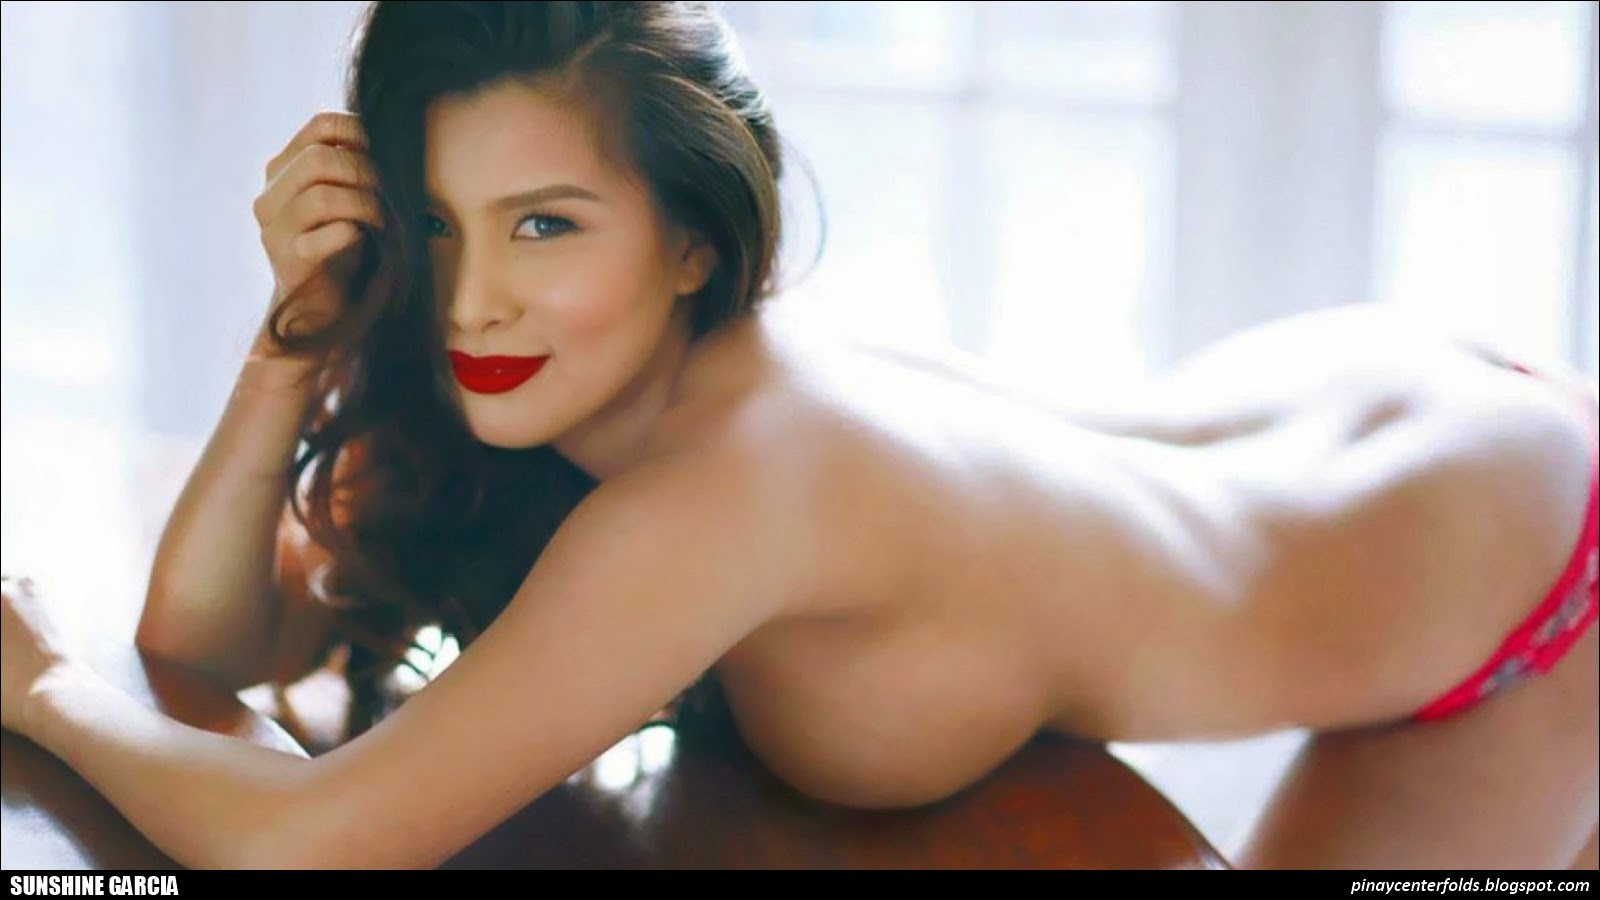 Sunshine Garcia In FHM 2